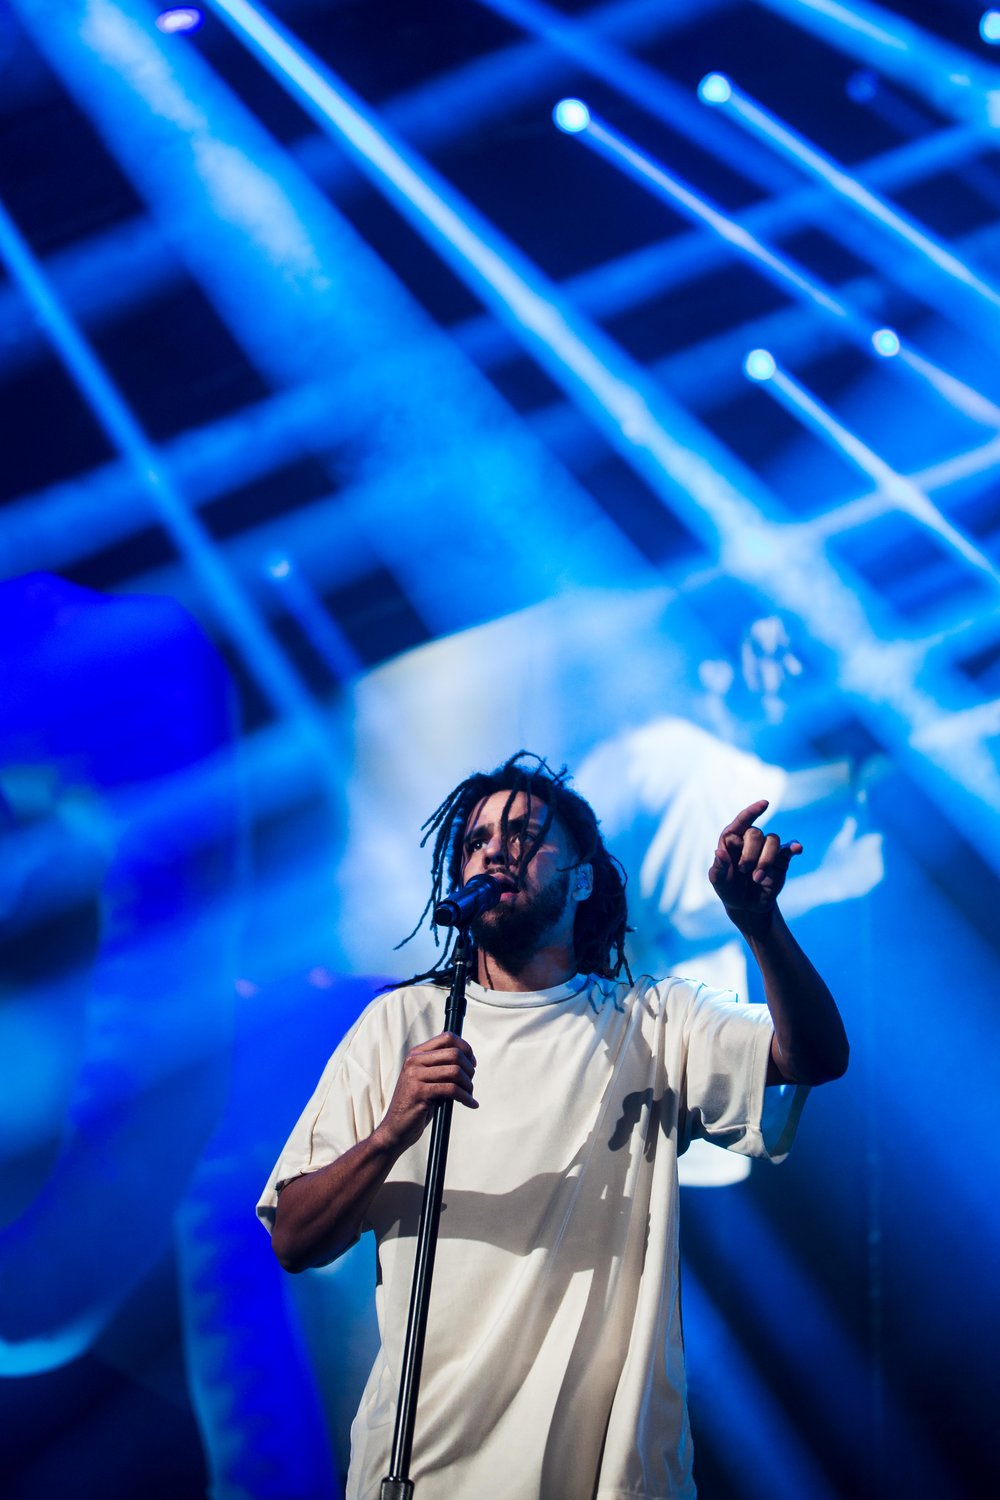 October 2018: J Cole at Scotiabank Arena